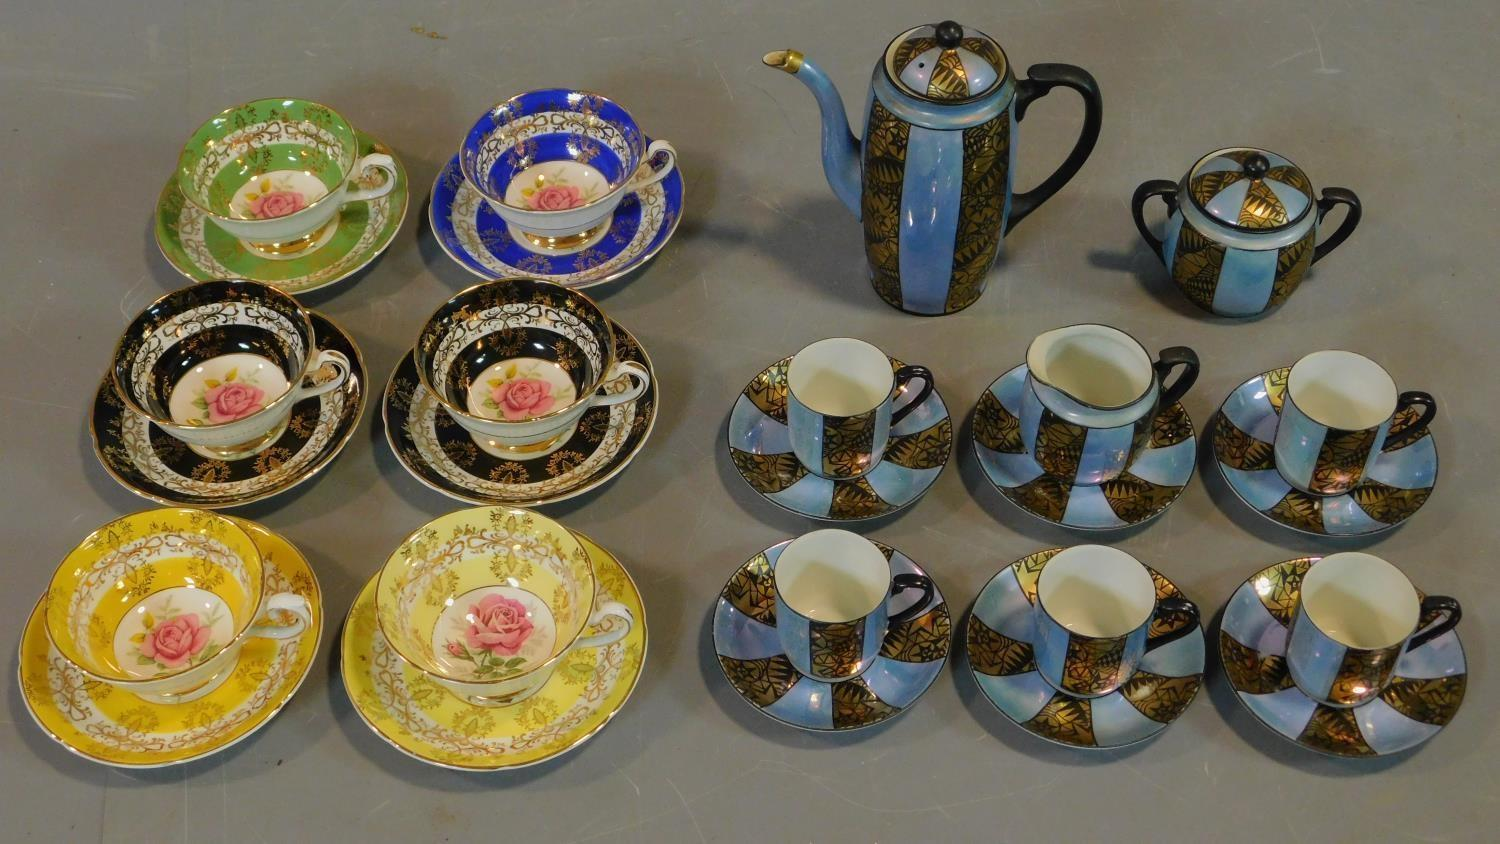 A set of six Royal Grafton tea cups and saucers and a Noritake coffee set.